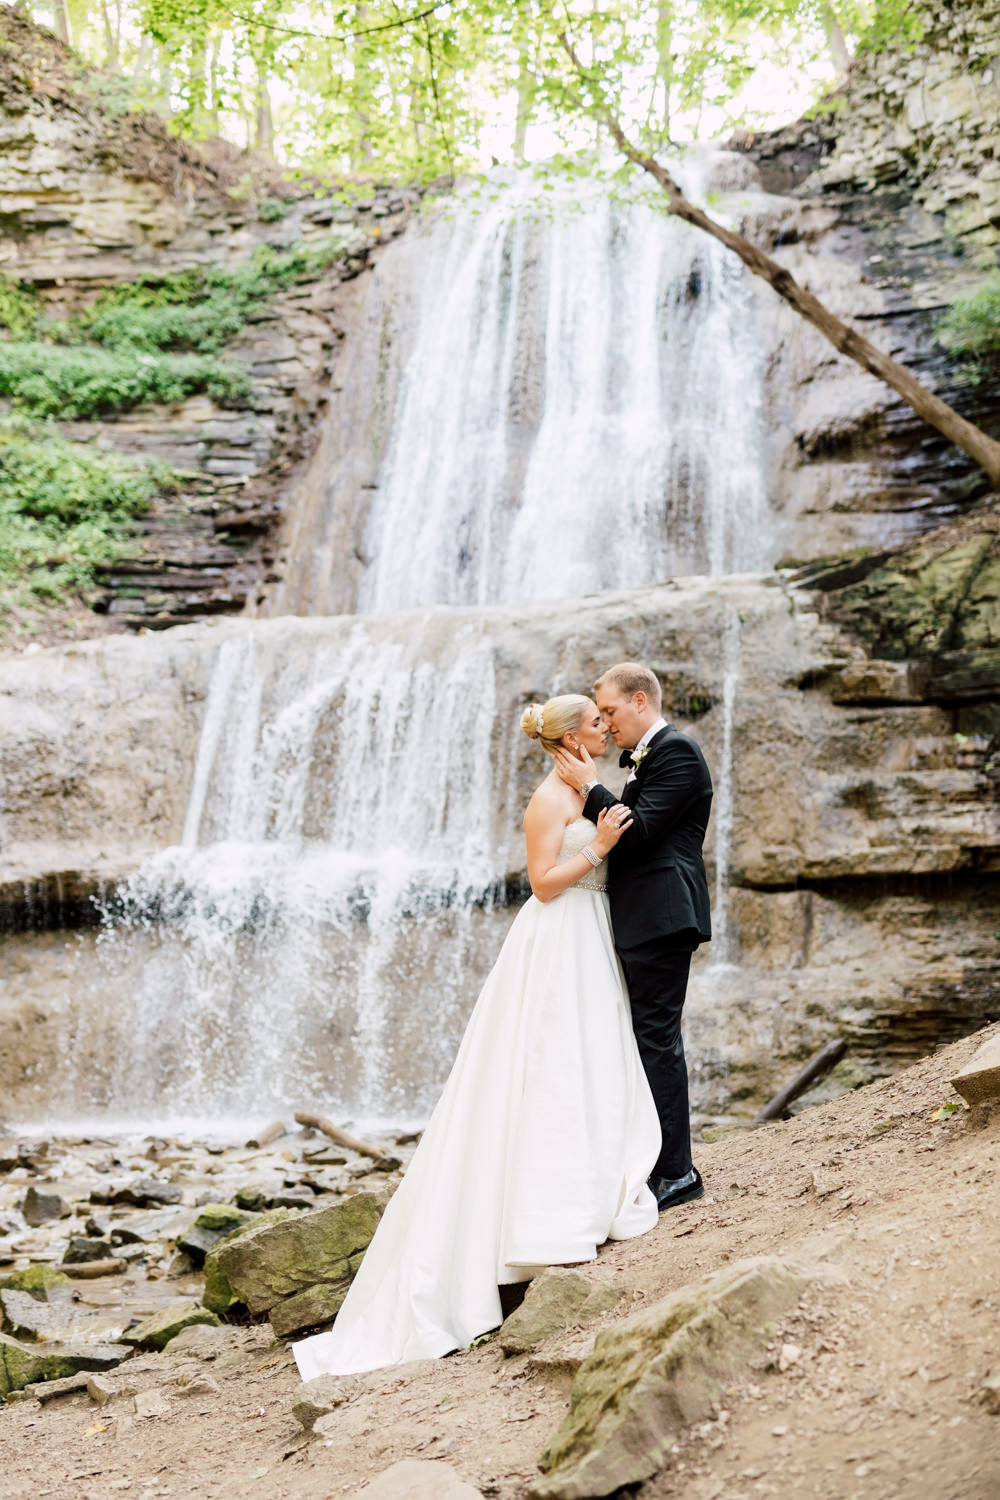 Wedding shoot by the Water Falls